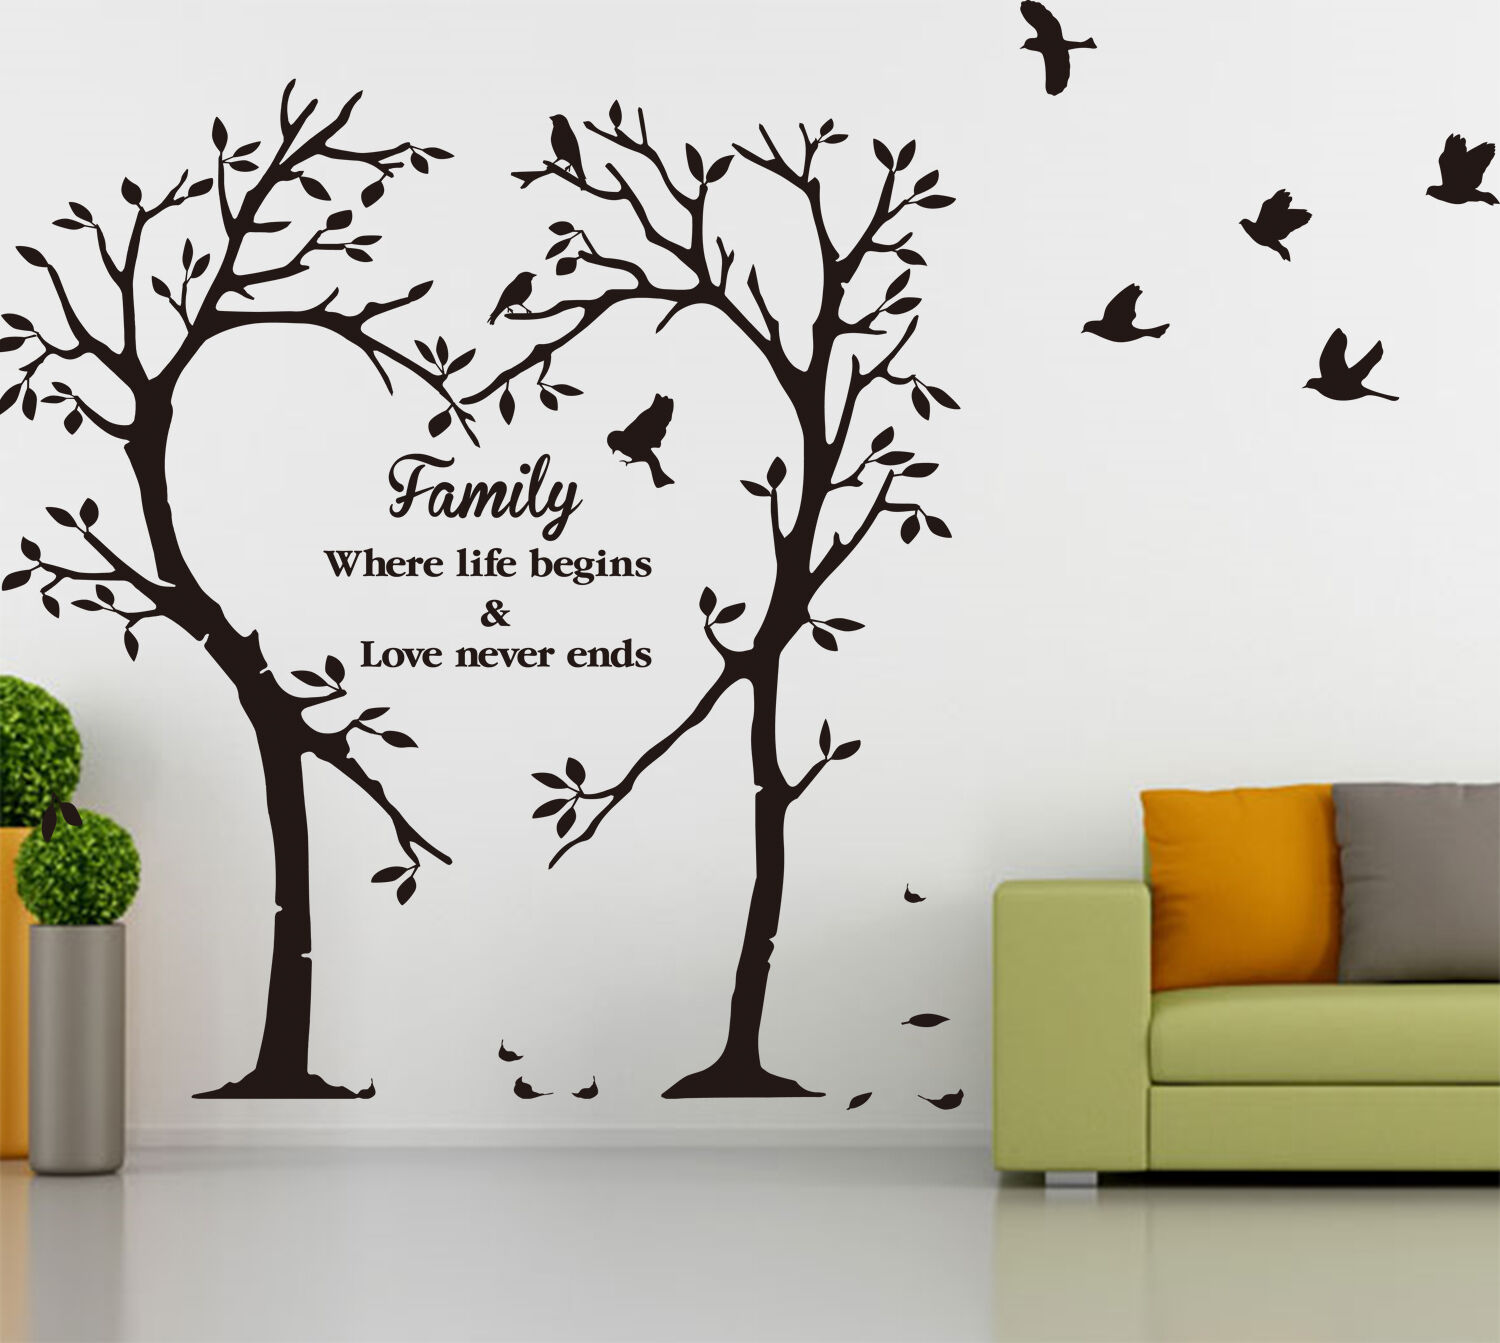 Family inspirational love tree wall art sticker wall for Inspiring dollar tree wall decals